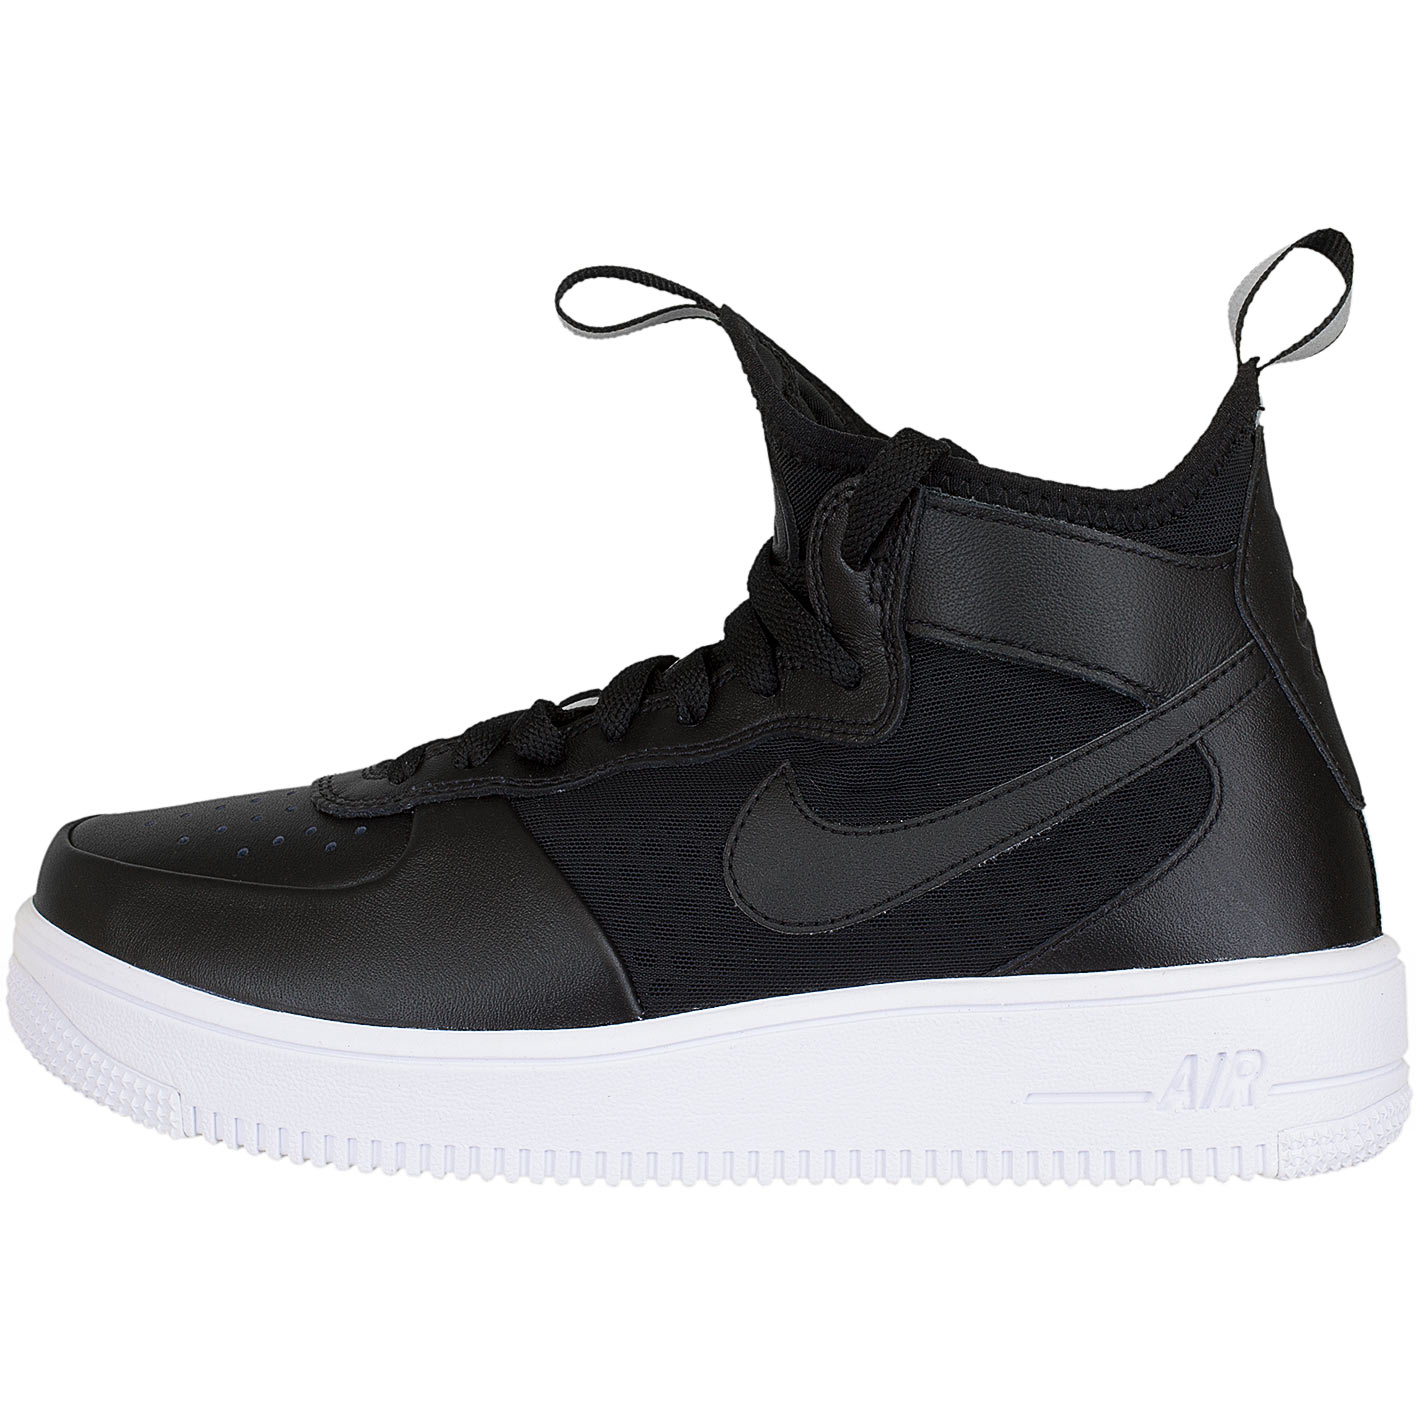 nike damen sneaker air force 1 uf mid schwarz schwarz. Black Bedroom Furniture Sets. Home Design Ideas